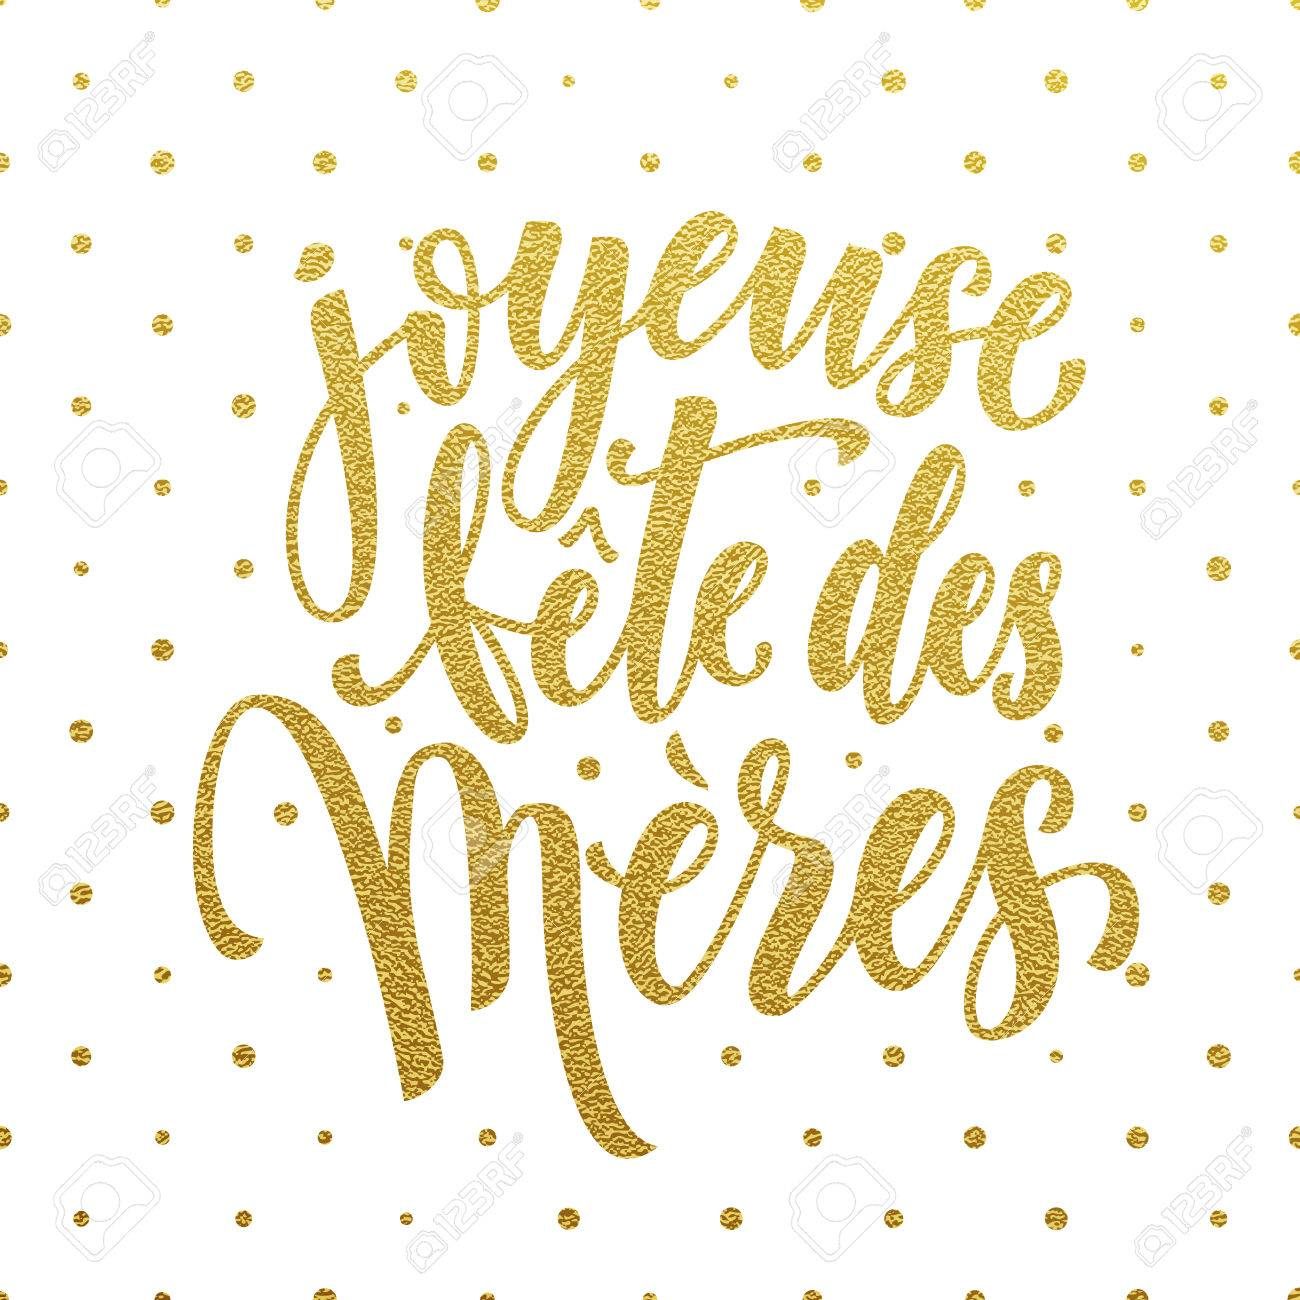 Joyeuse fete des meres mothers day in french vector greeting joyeuse fete des meres mothers day in french vector greeting card title with gold glitter m4hsunfo